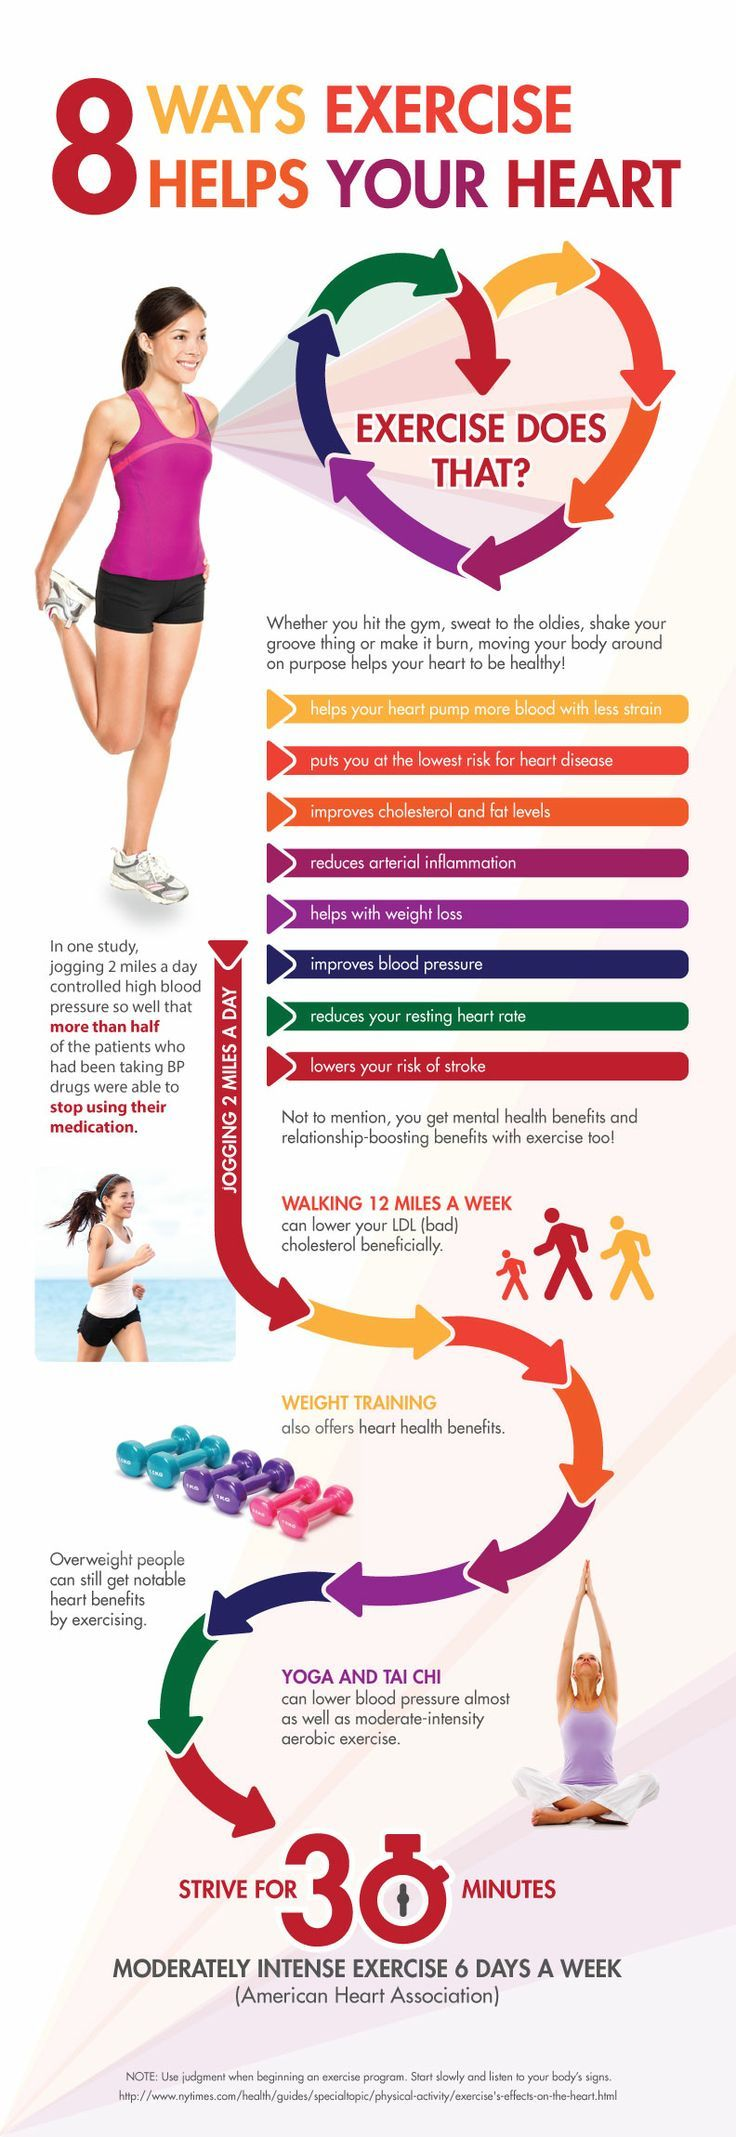 Eight Ways Exercise Helps Your Heart.